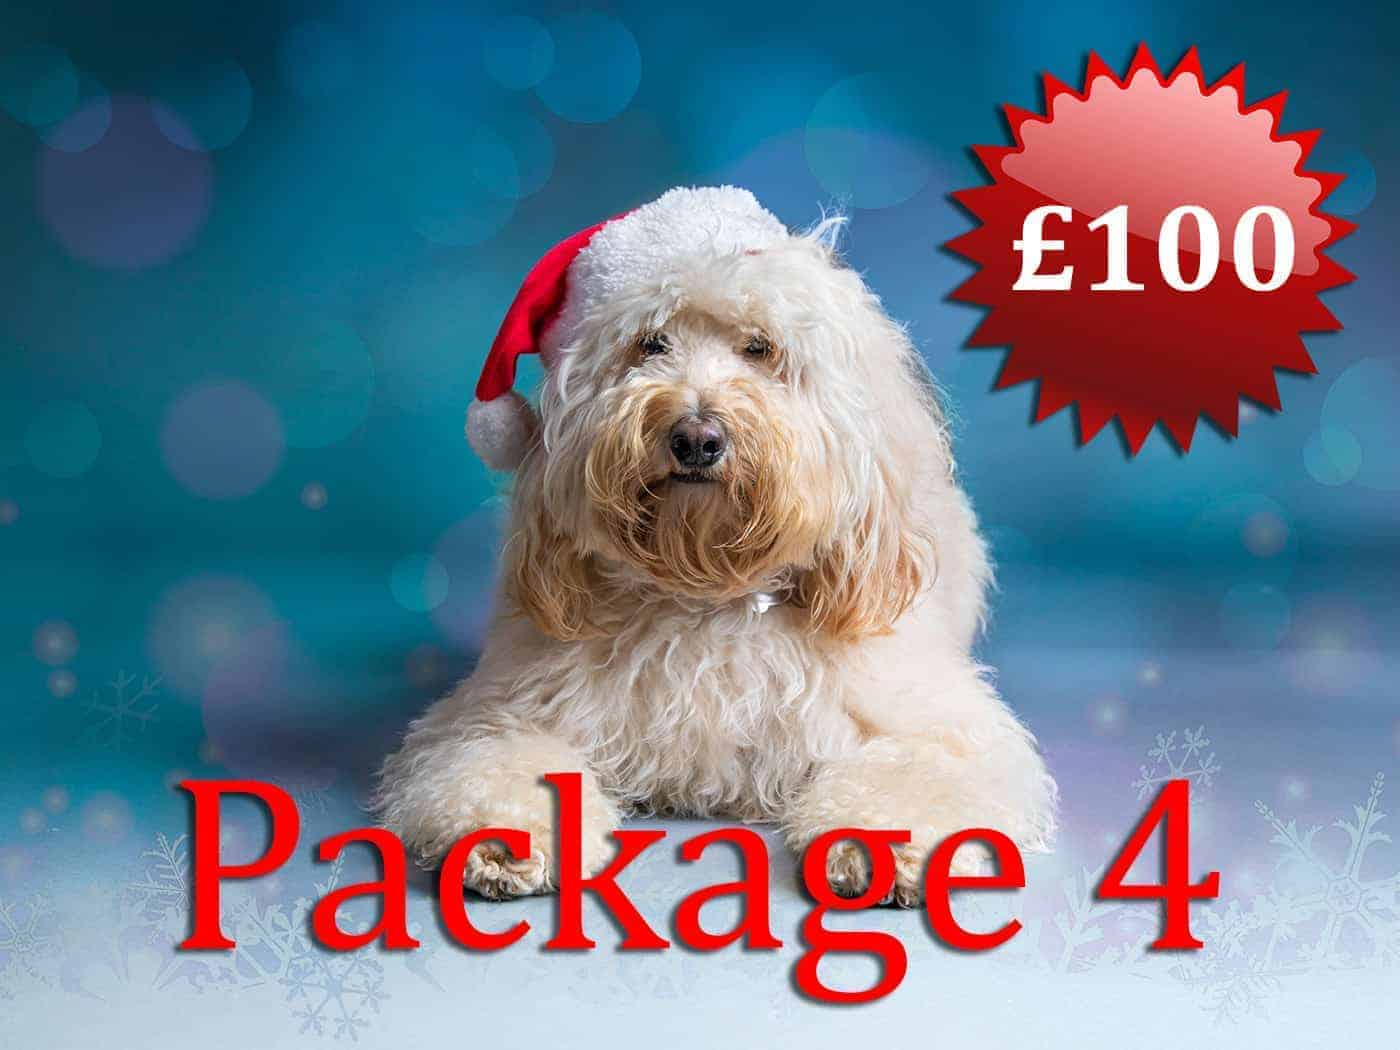 Christmas Dog Portrait £100